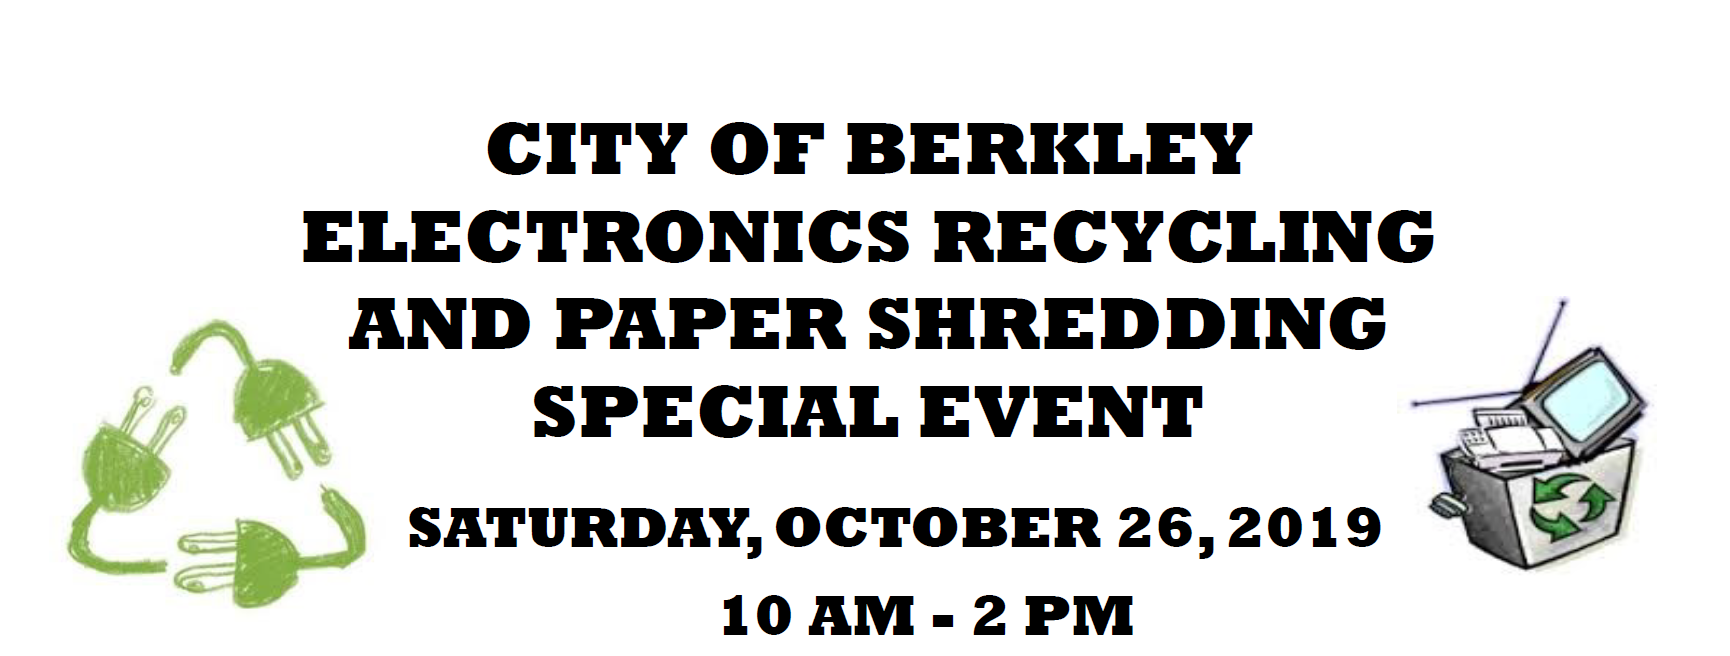 Berkley Electronic Recycling Event Header Graphic